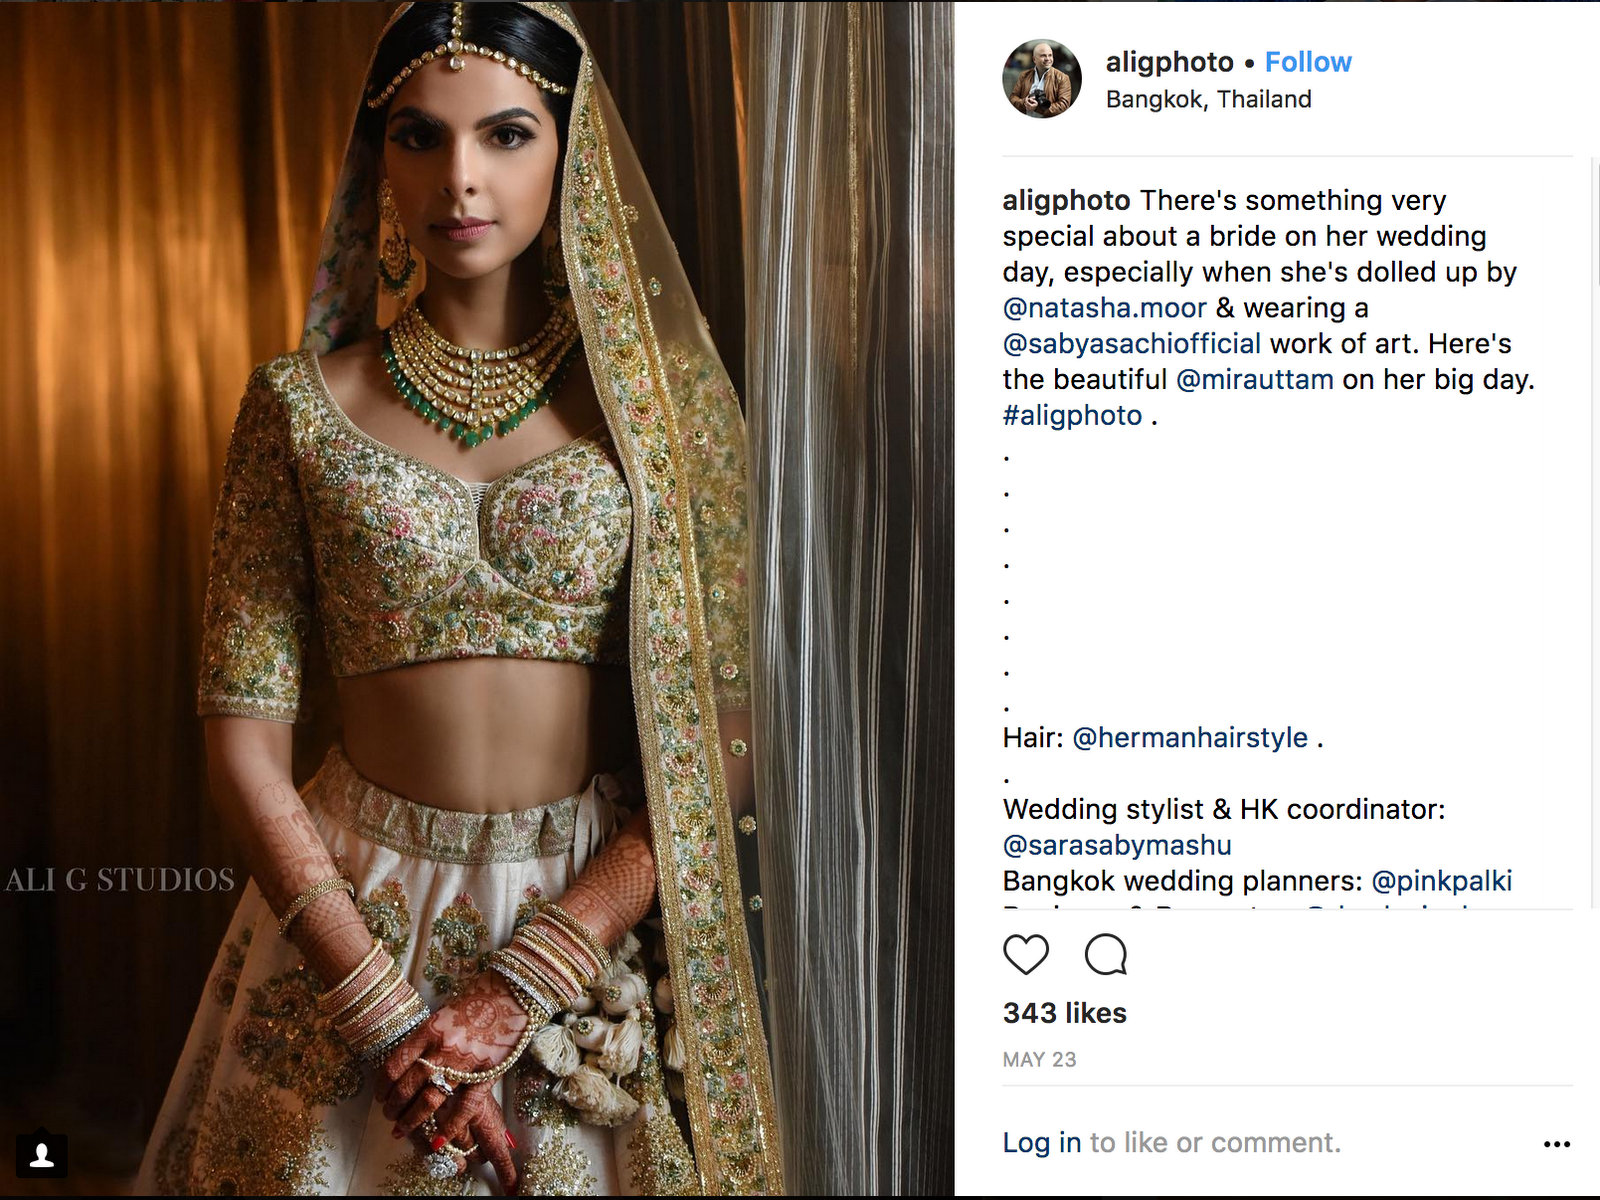 How to find a wedding photographer on Instagram